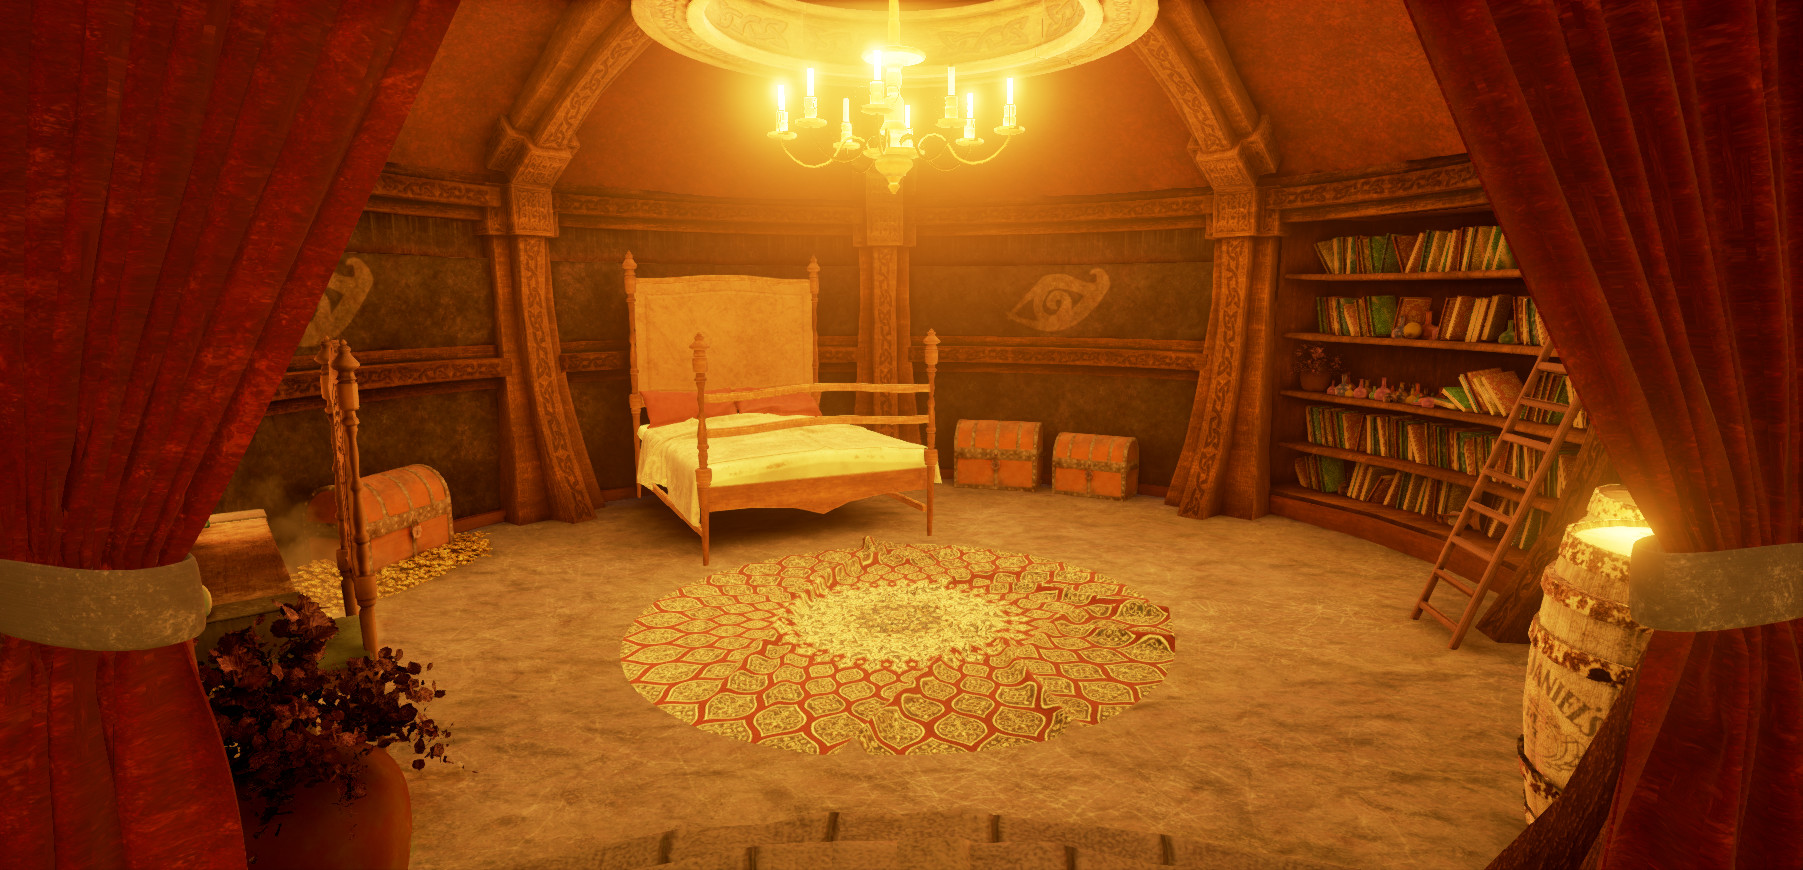 Room Modeling jaume caldentey - wizard room modeling + texturing